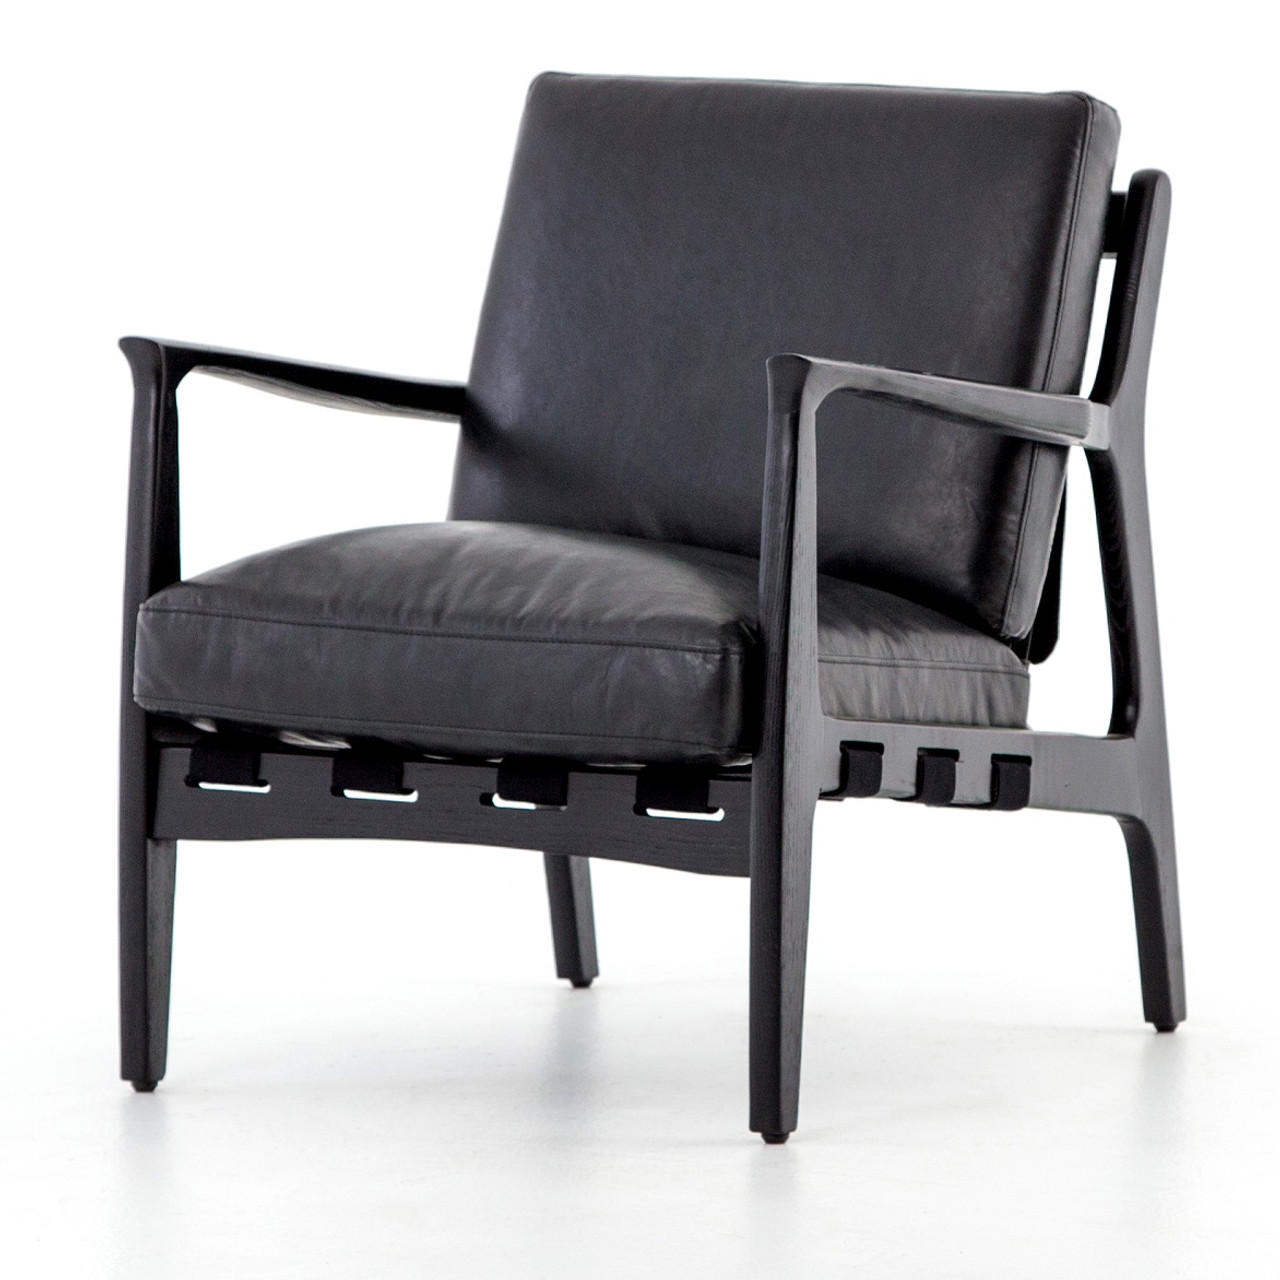 Merveilleux Silas Mid Century Modern Aged Black Leather Arm Chair